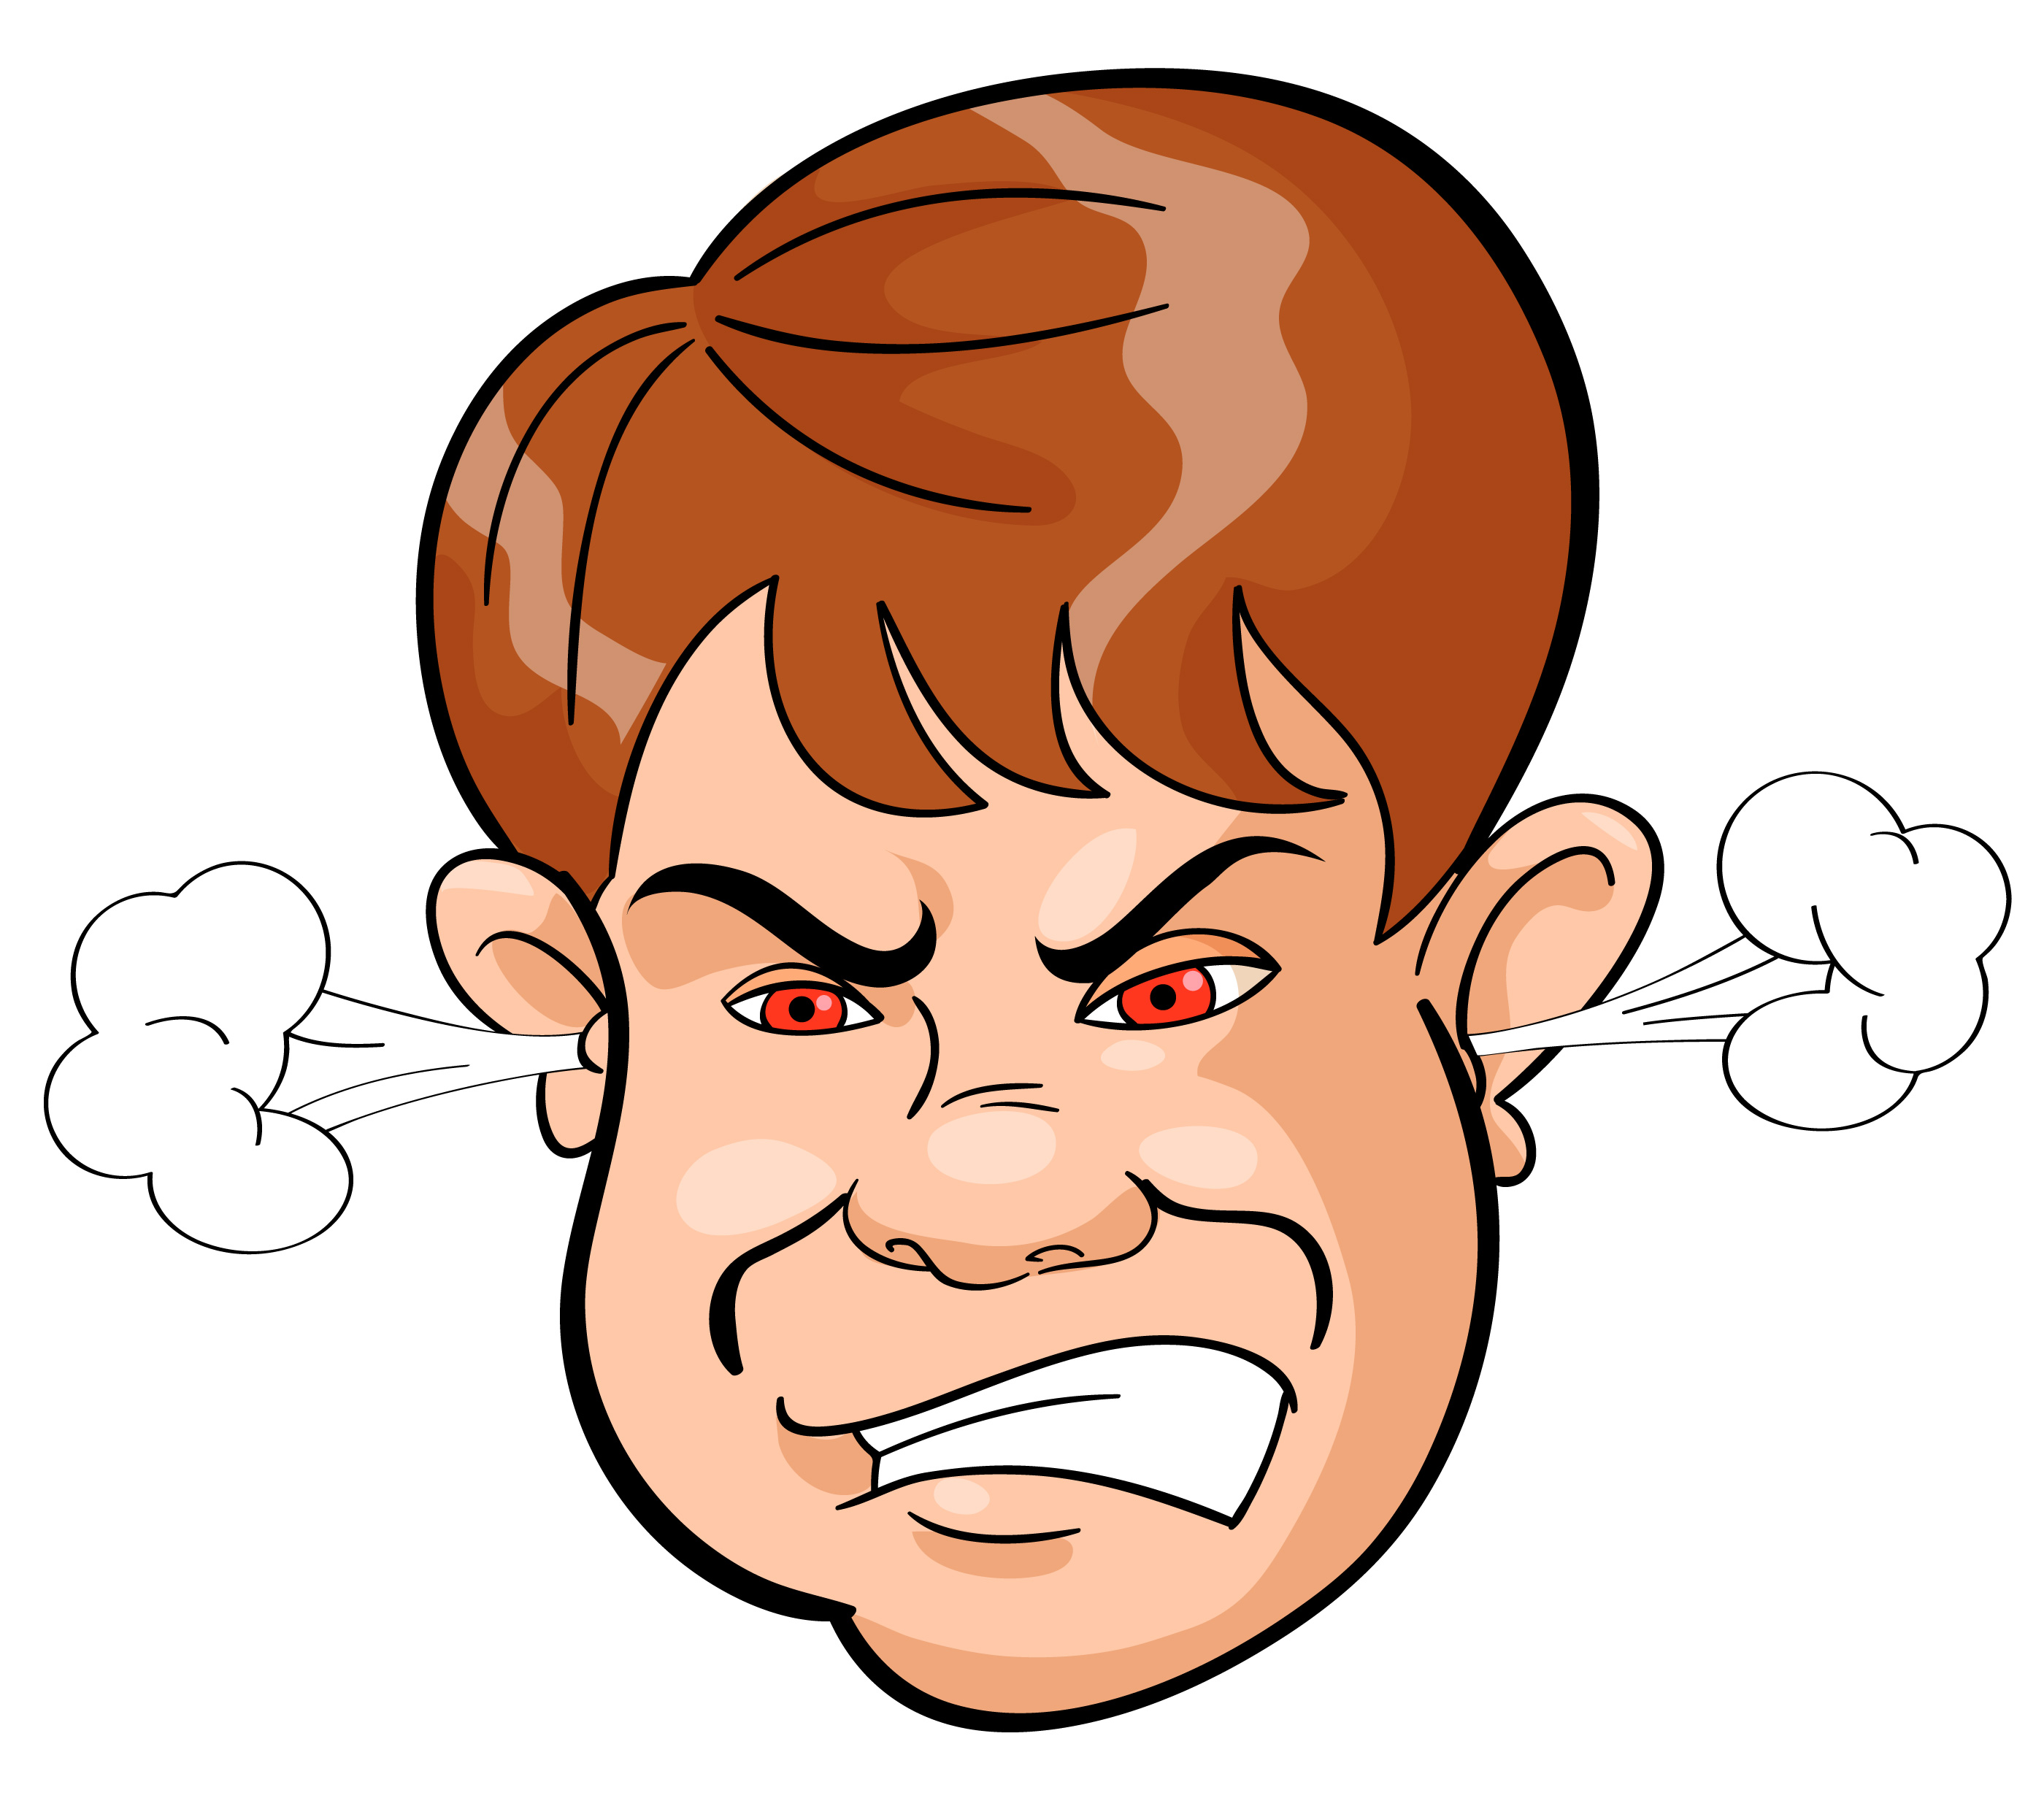 Anger clipart #5, Download drawings